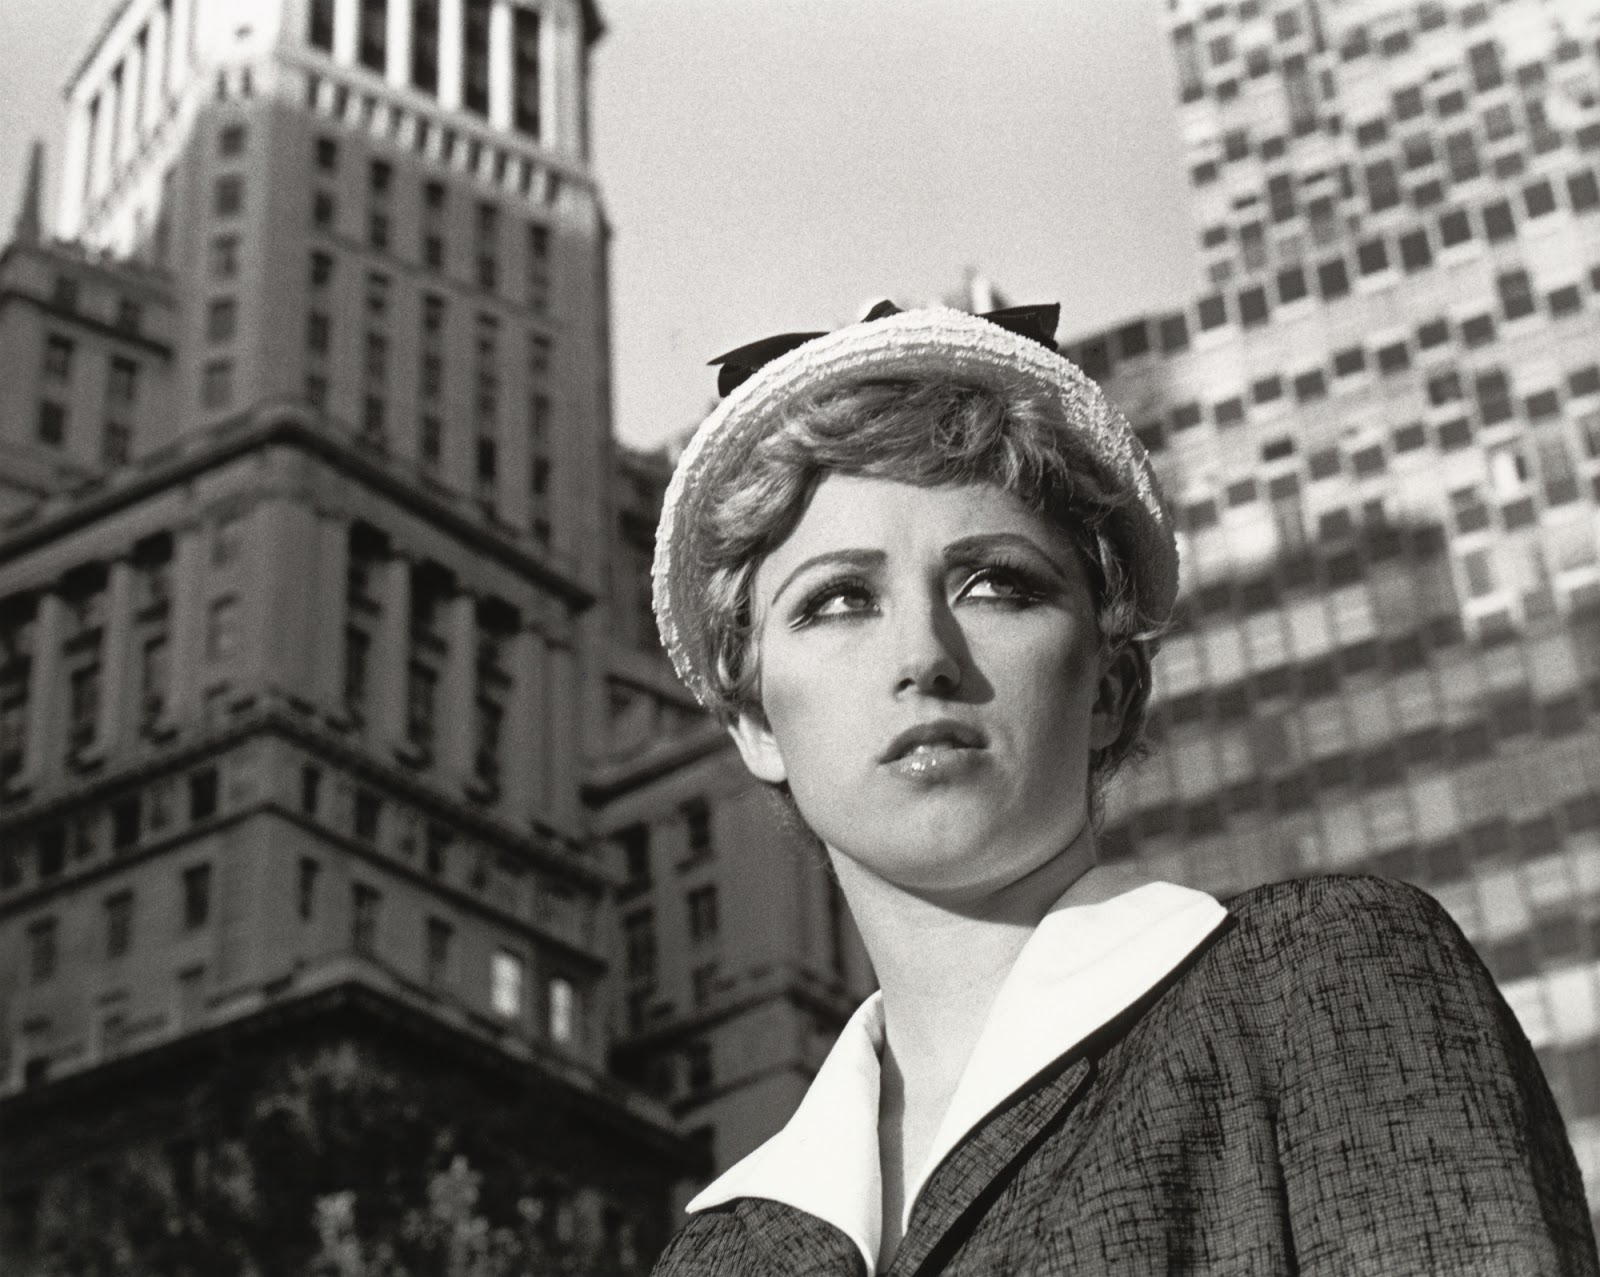 Cindy Sherman Untitled Film Still #21